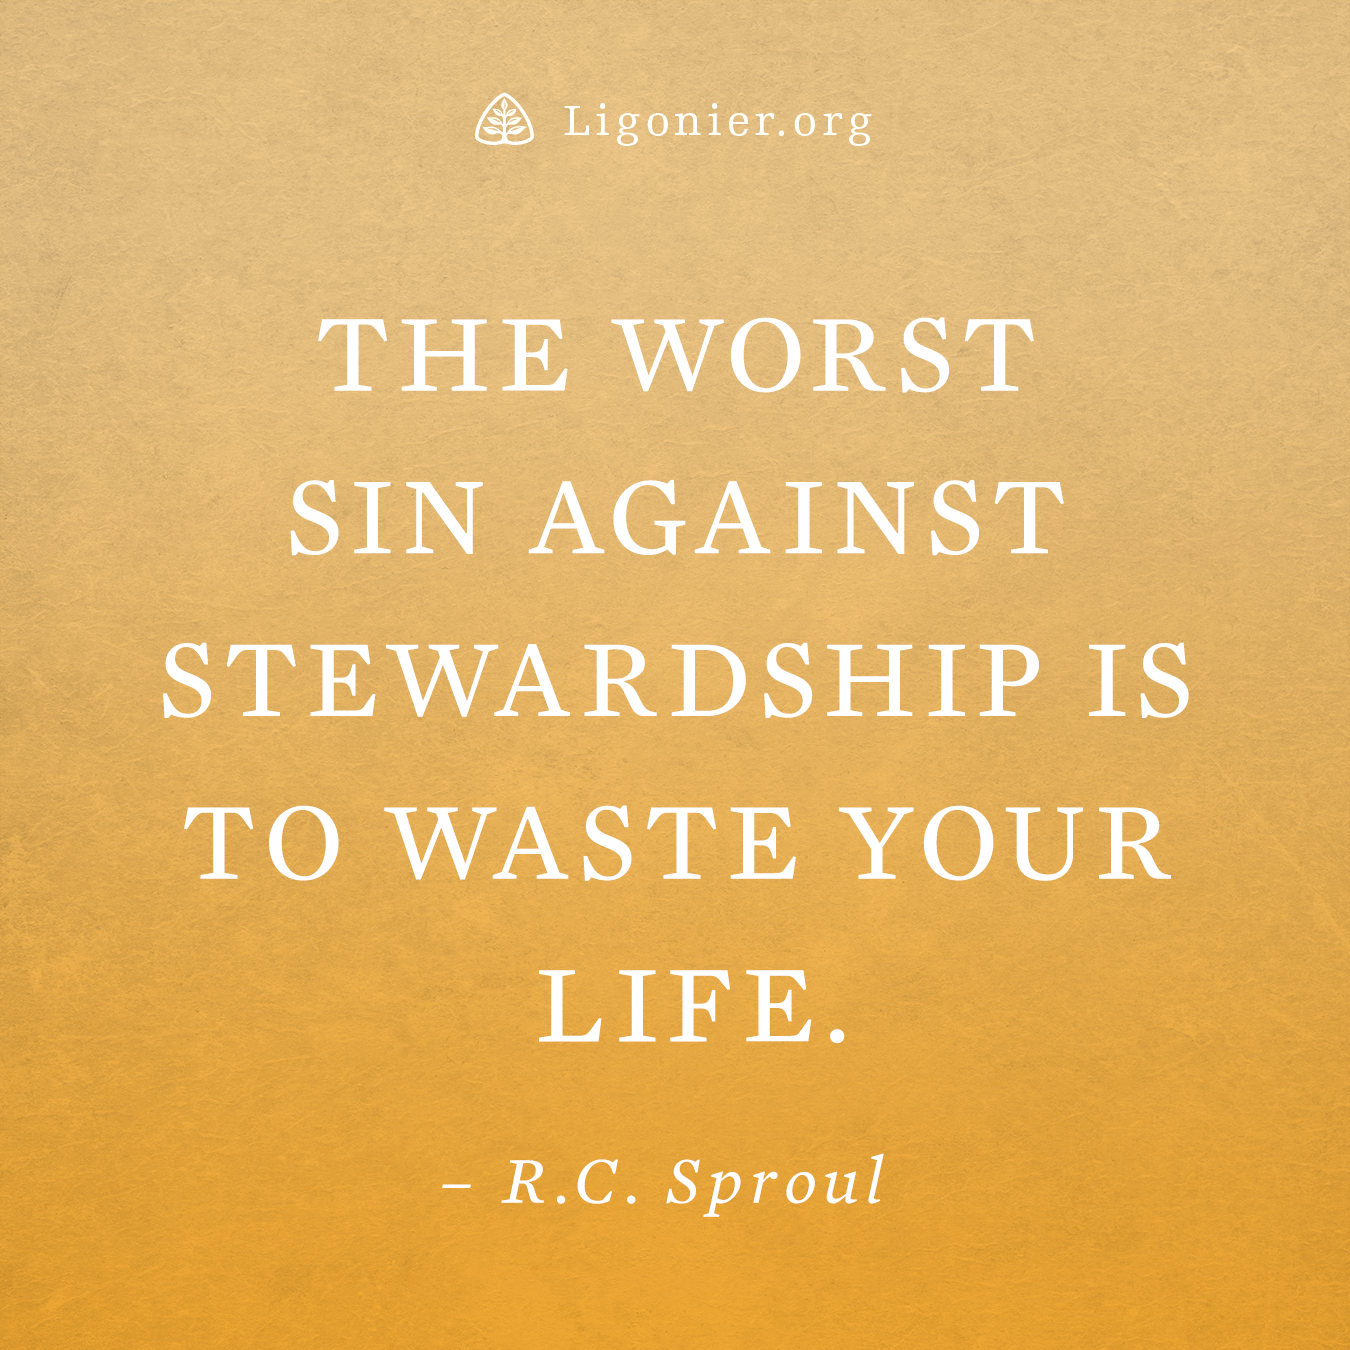 Stewardship Quotes The Worst Sin Against Stewardship Is To Waste Your Lifer.c.